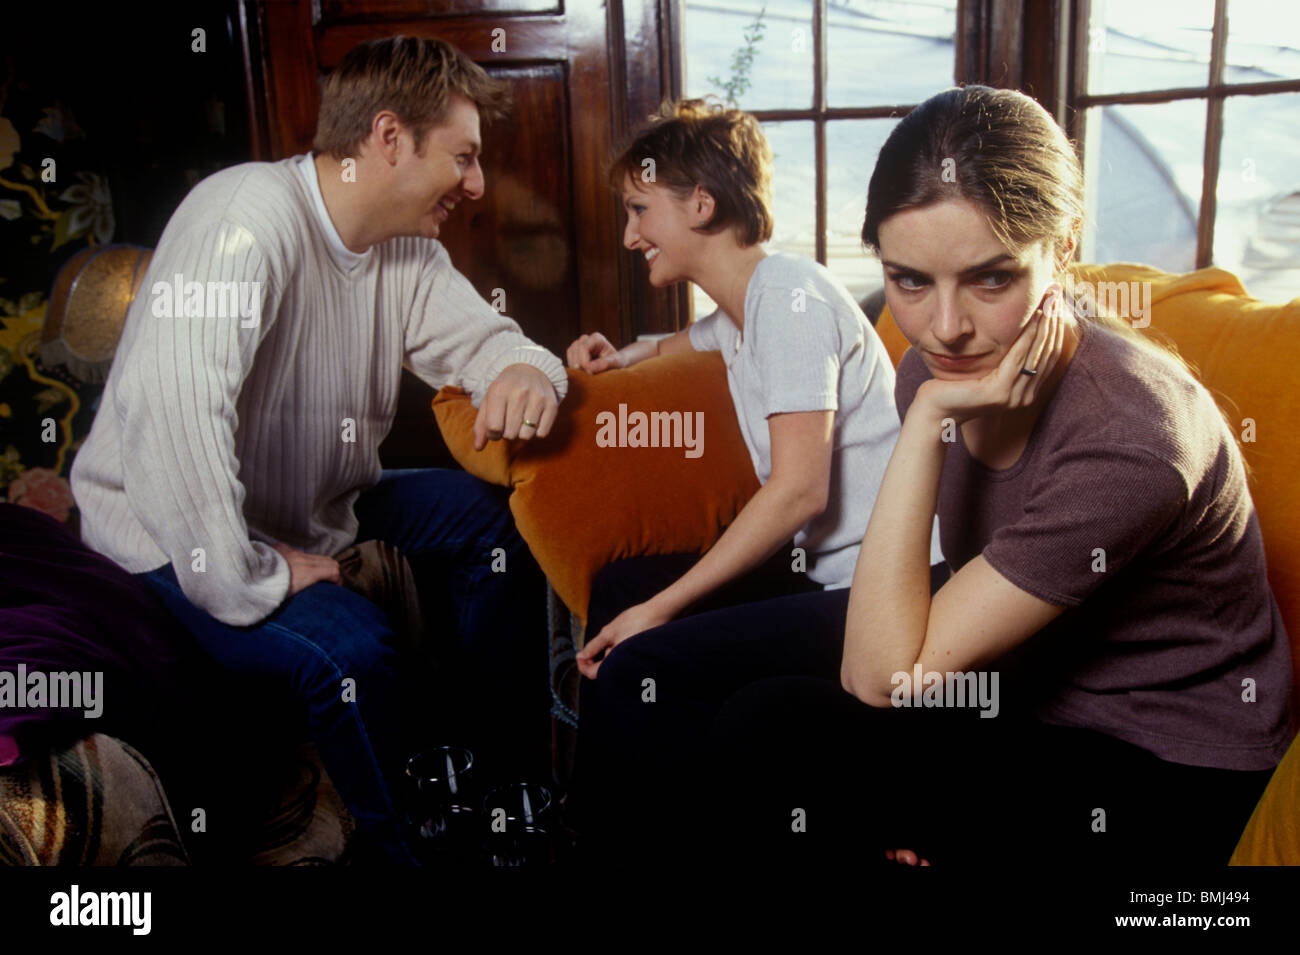 a couple having a drink together in a bar with a woman in the foreground looking fed up - Stock Image